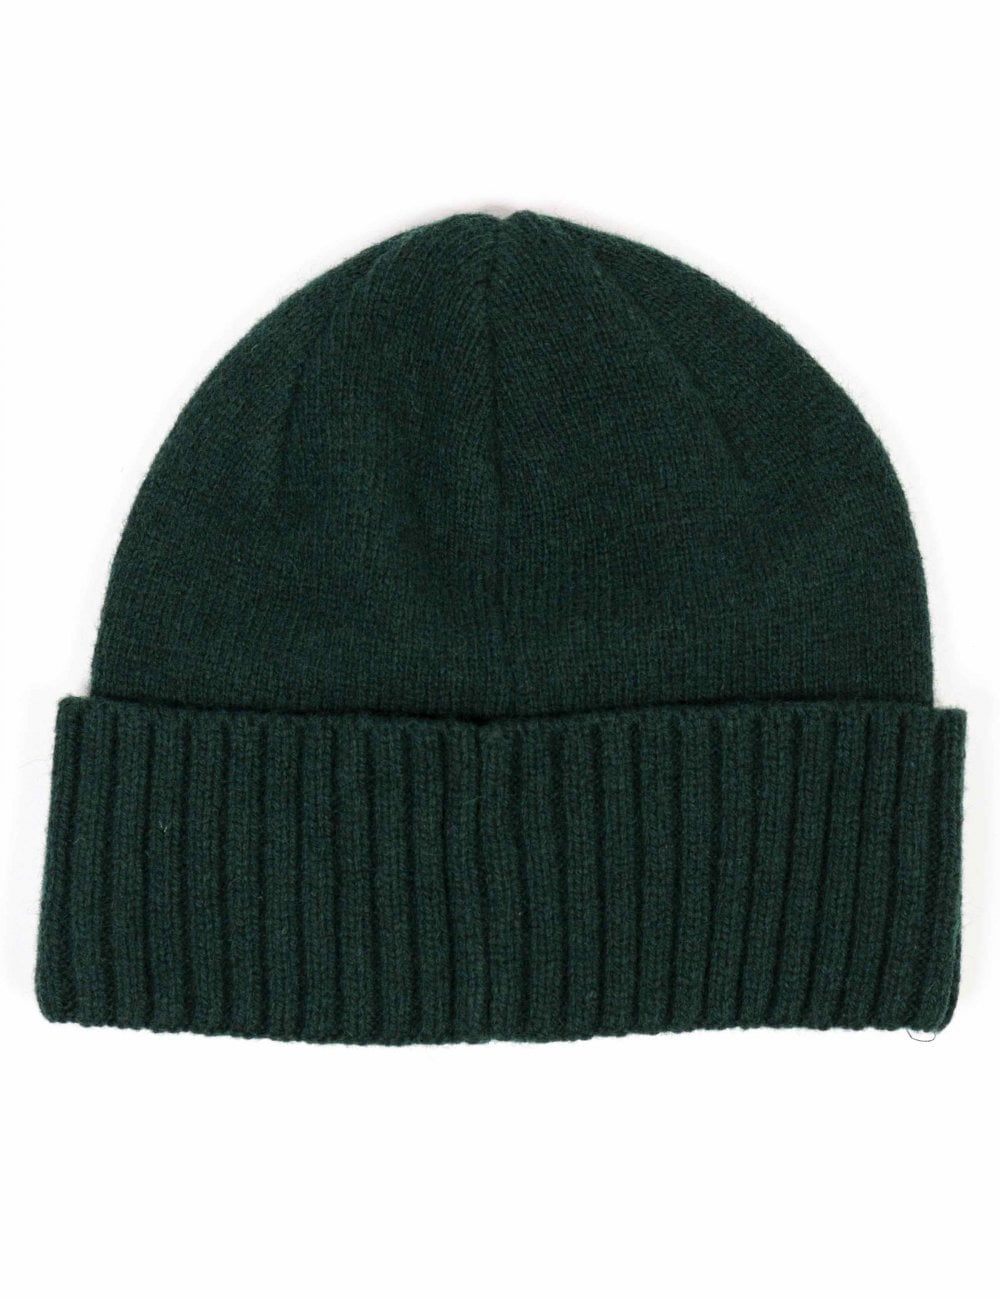 259a556b0 Brodeo Beanie Hat - Live Simply Winding: Micro Green